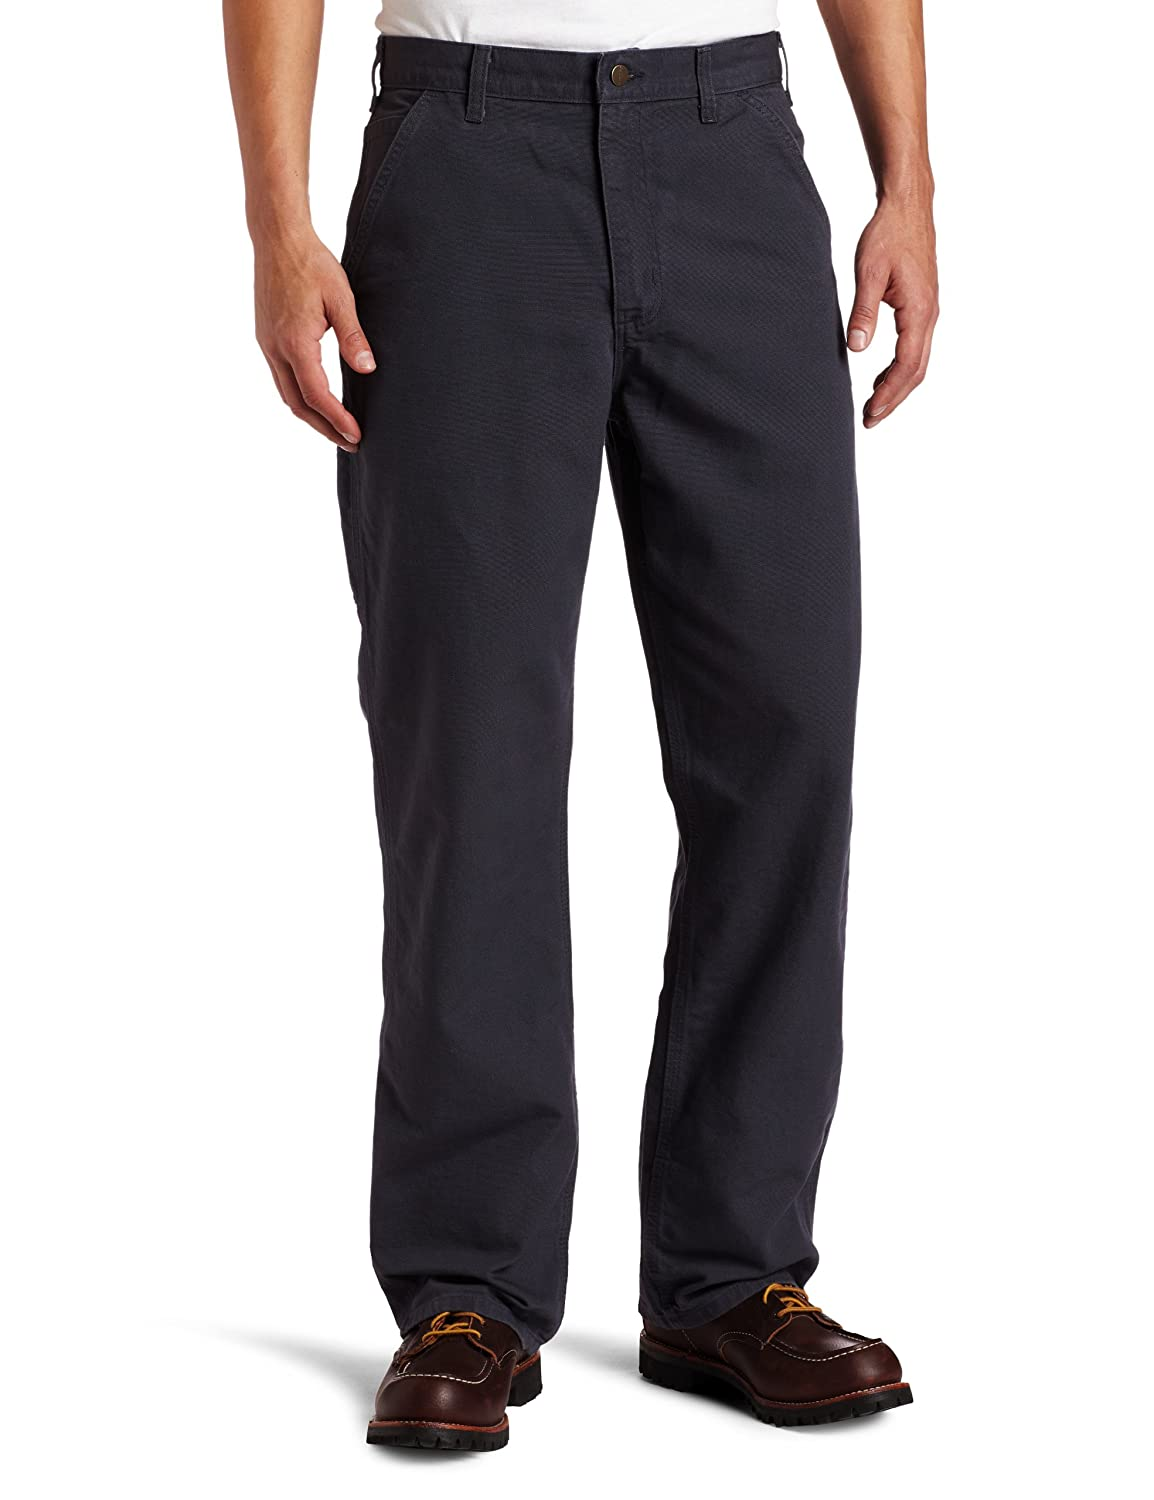 Carhartt Men's Washed Duck Work Dungaree Utility Pant B11 Carhartt Sportswear - Mens